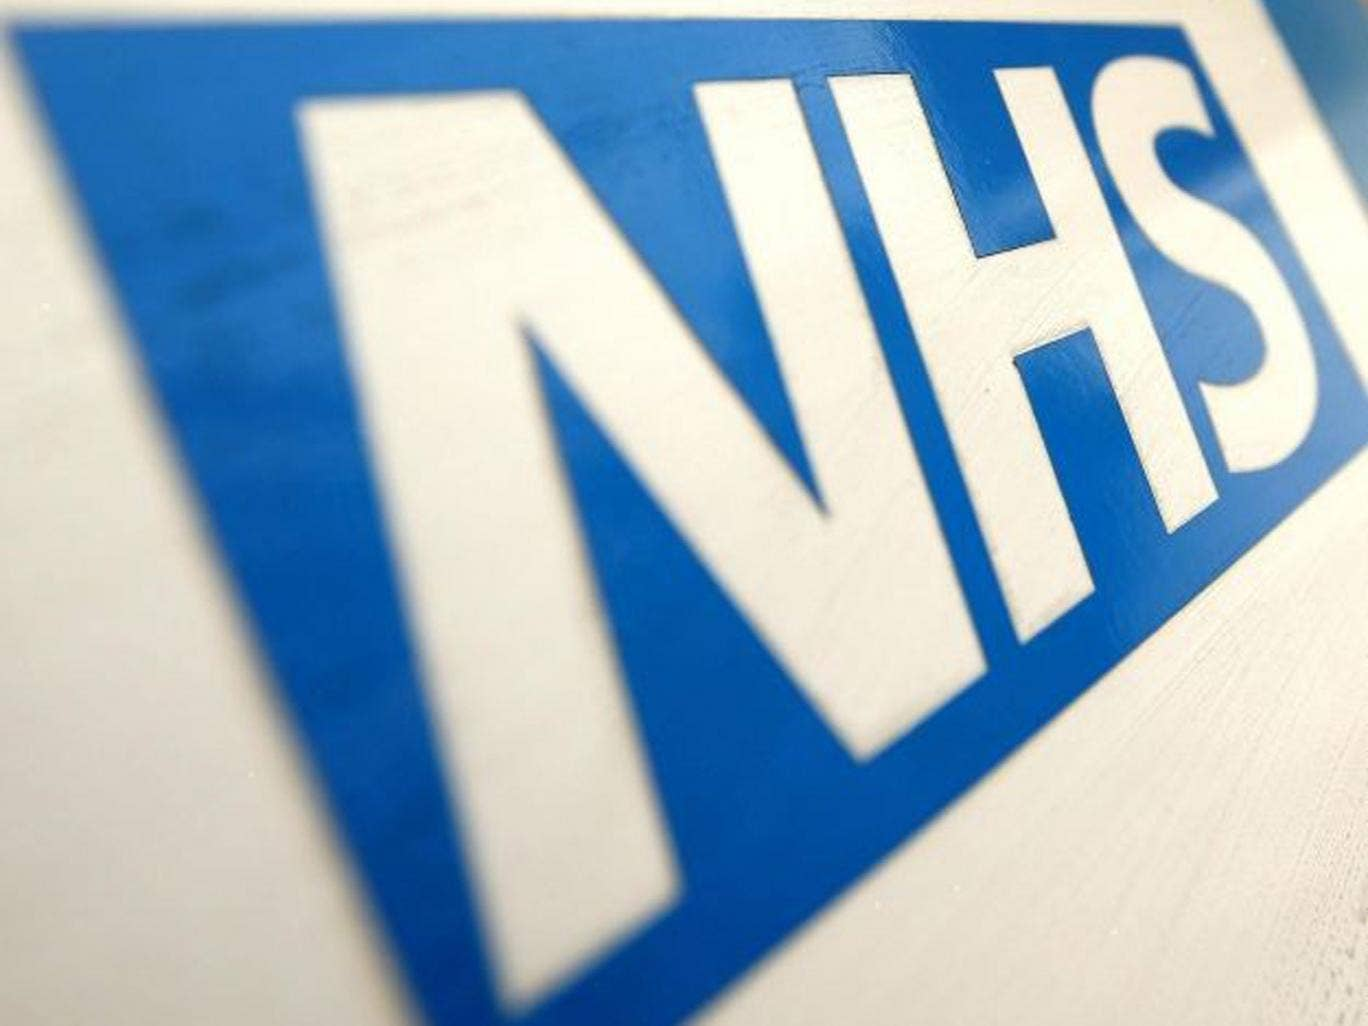 A new NHS Helpline has been putting peoples lives at risk, doctors are saying